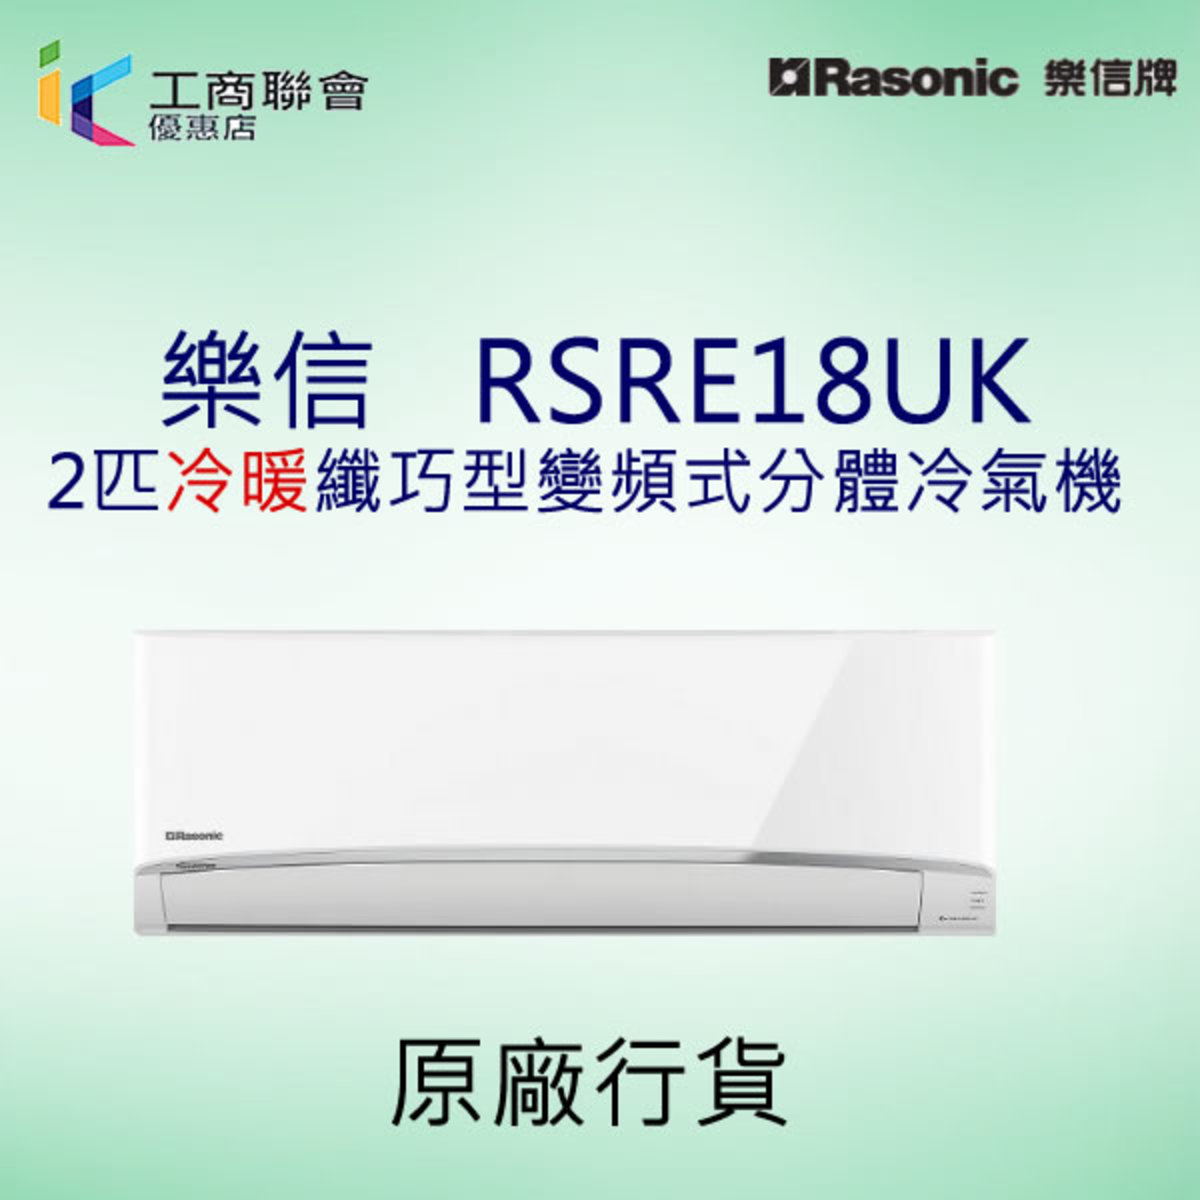 RSRE18UK 2 (warm and cold) compact variable-frequency split air conditioner